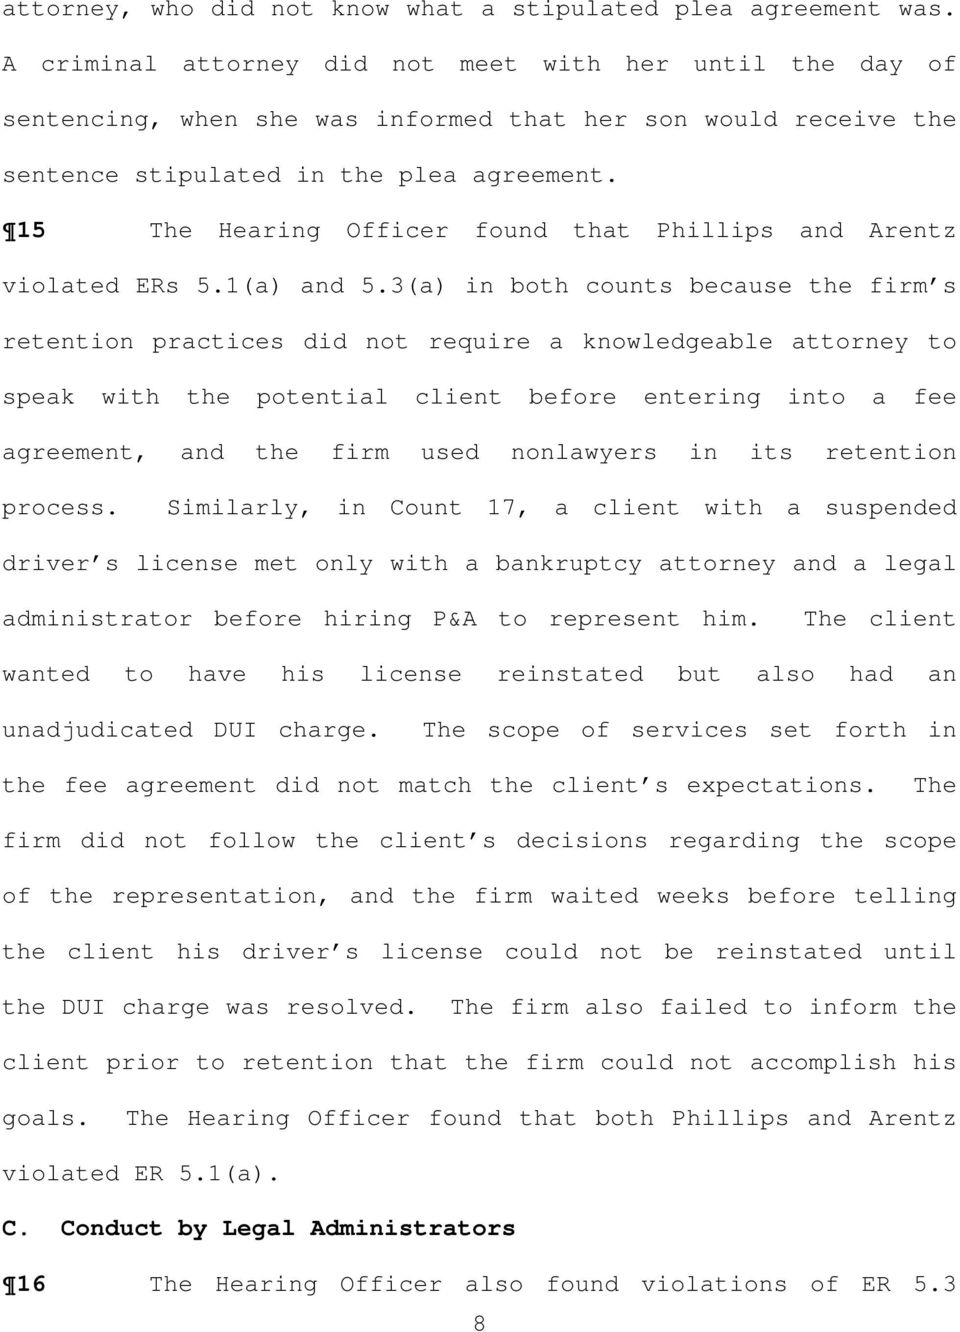 15 The Hearing Officer found that Phillips and Arentz violated ERs 5.1(a) and 5.